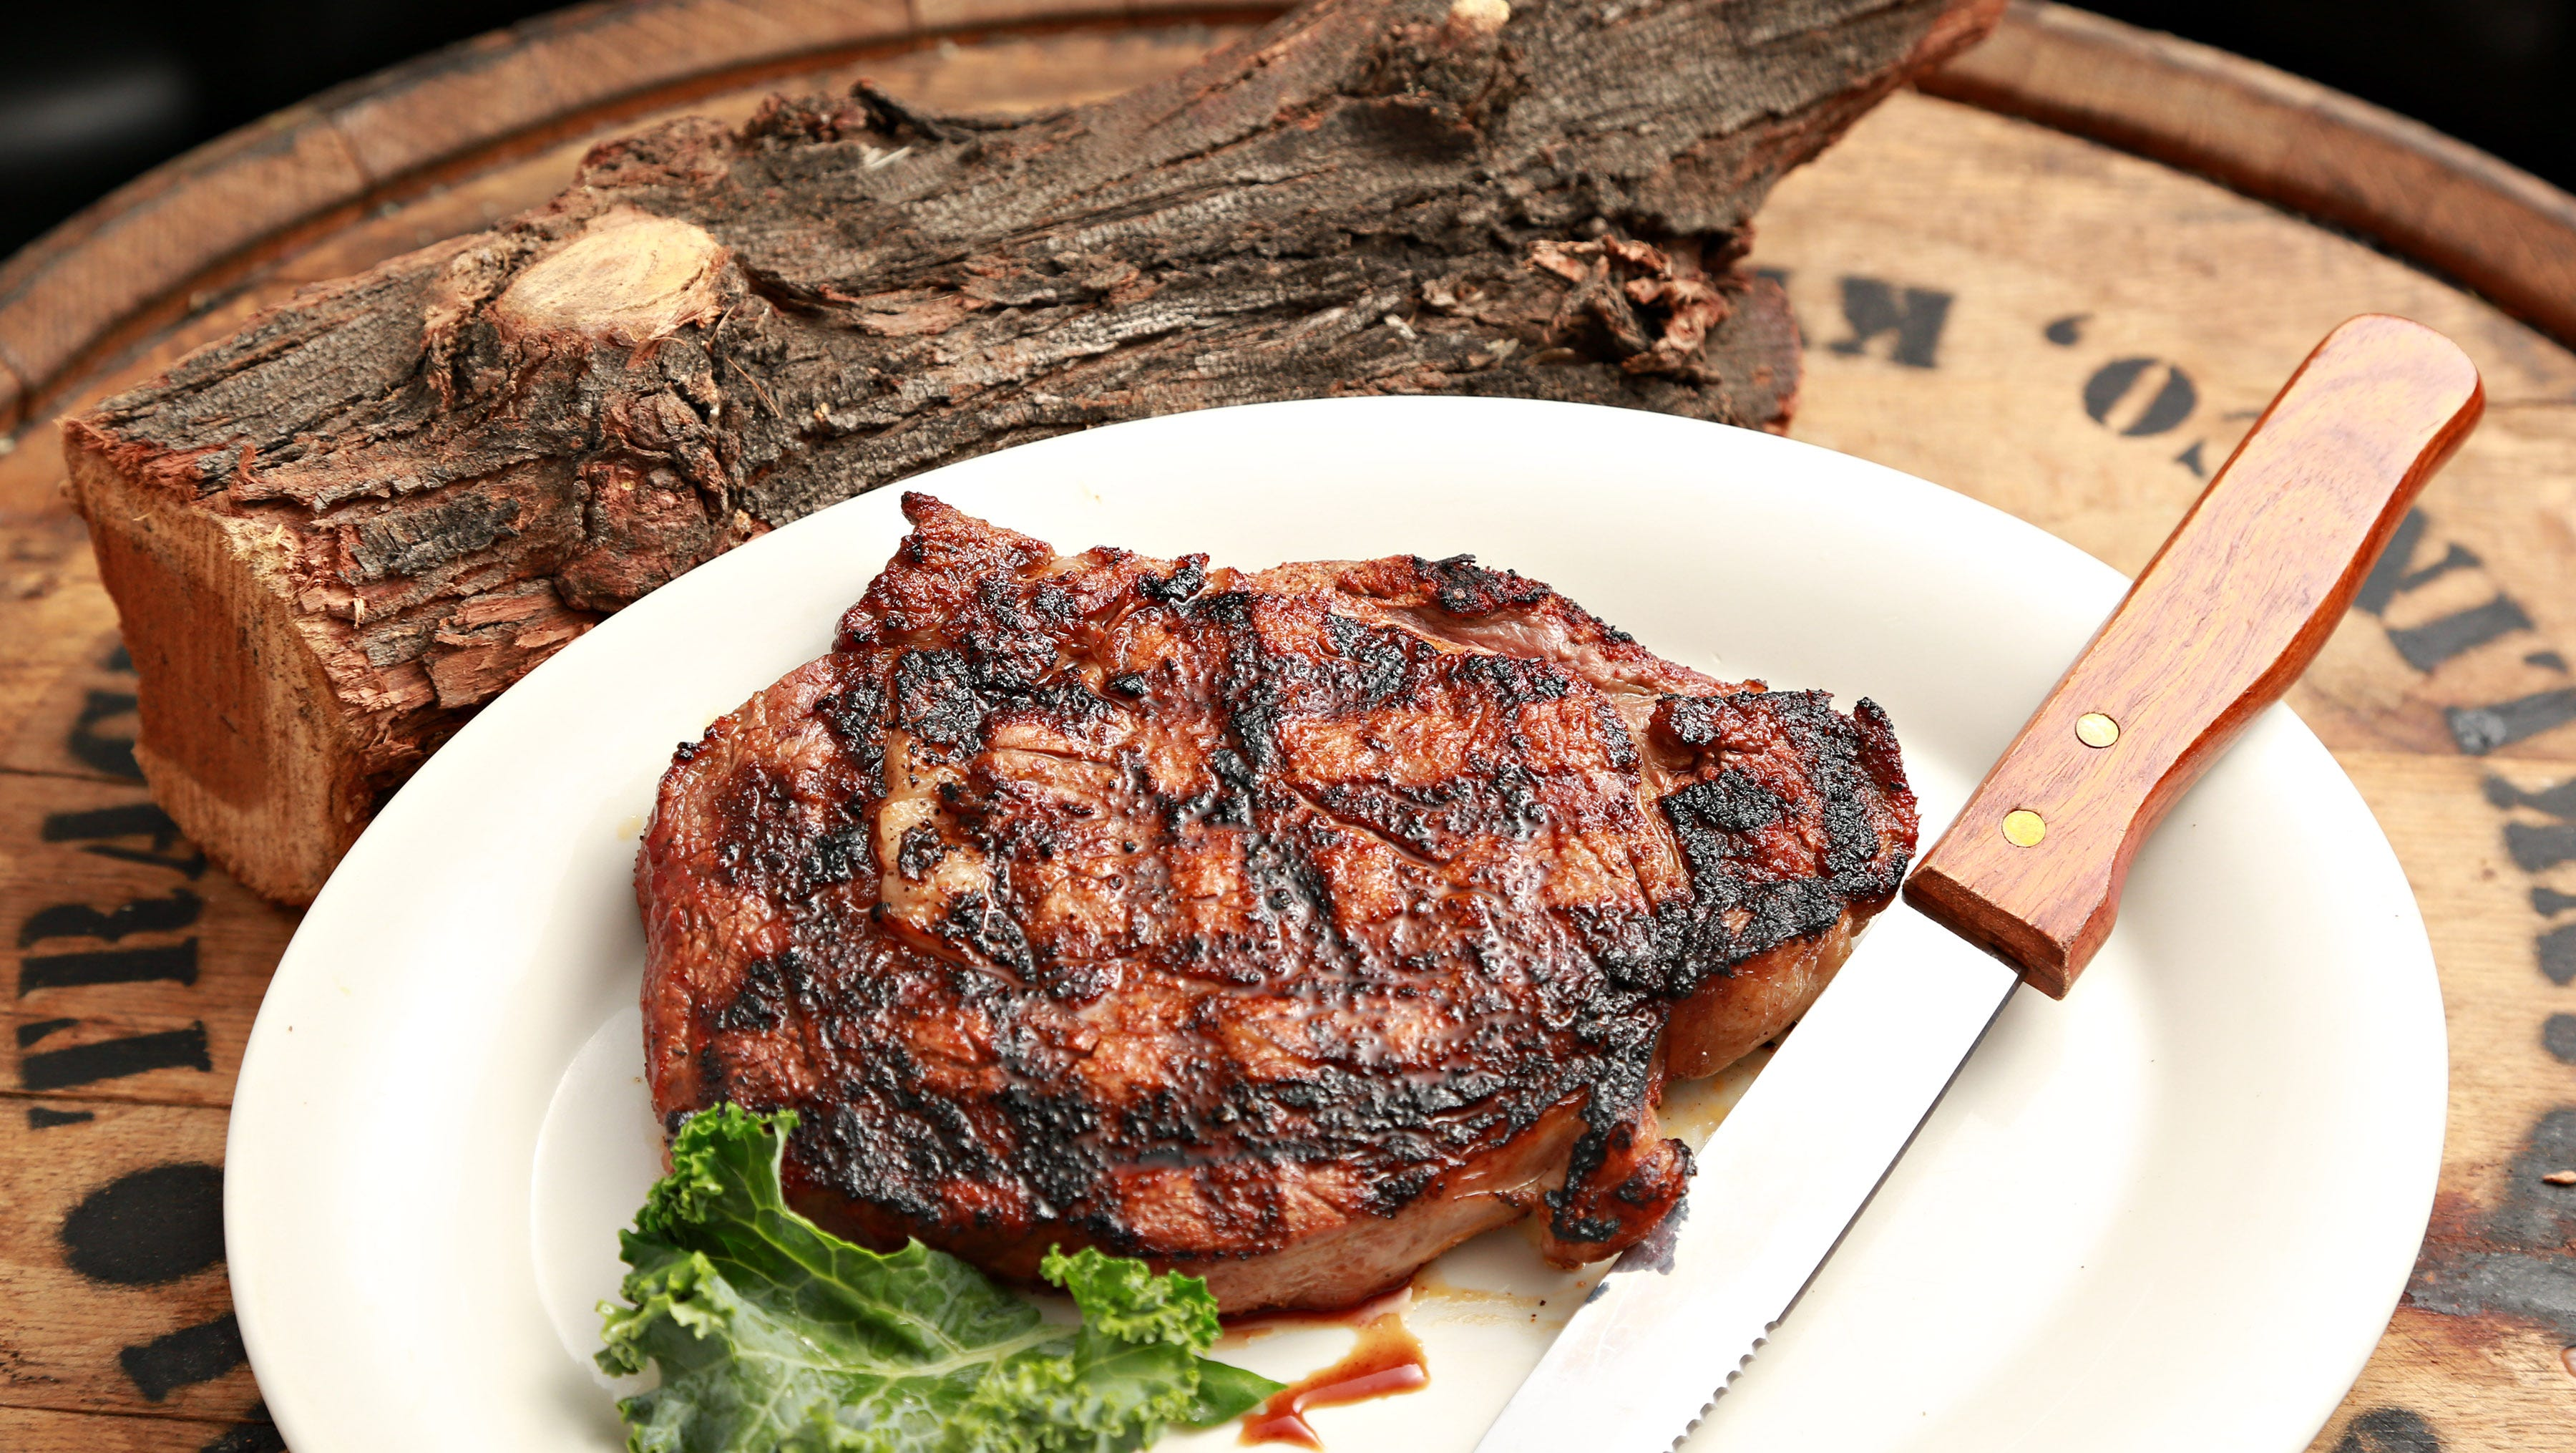 How To Match Wood To Meat For Best Smoky Flavors